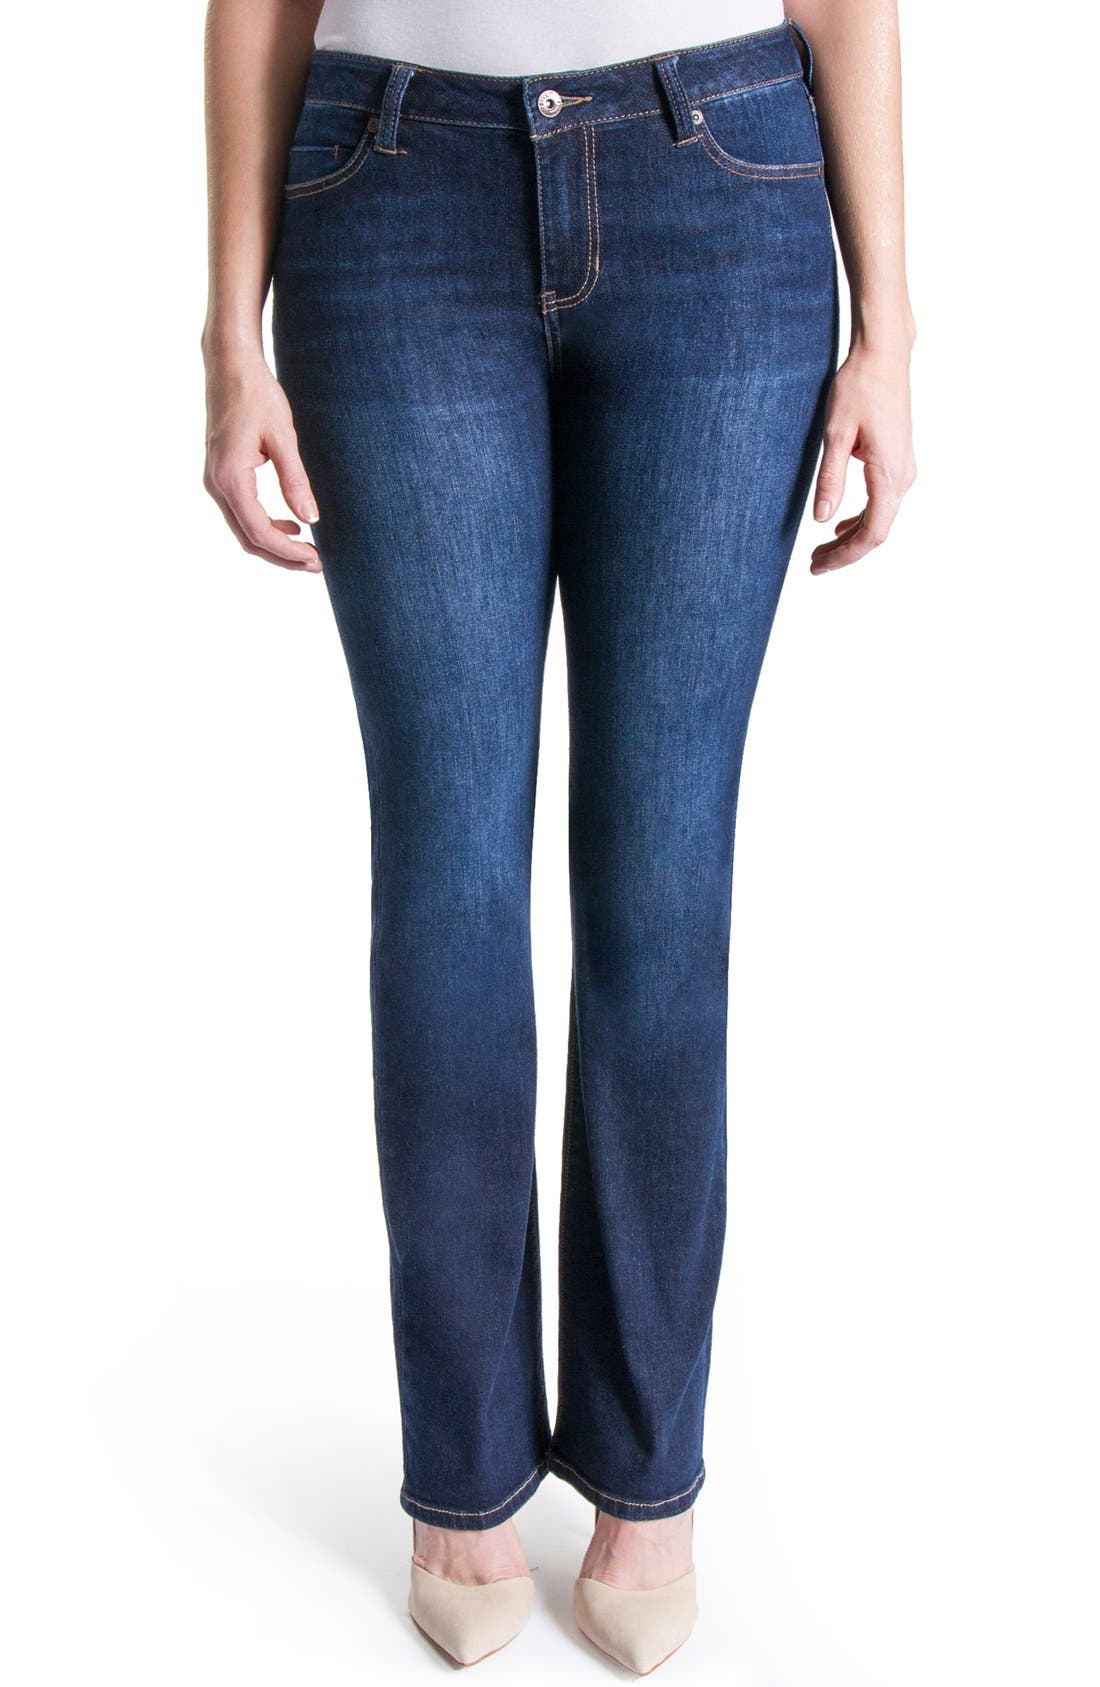 Liverpool Jeans Company 'Lucy' Stretch Bootcut Jeans (Vintage Super Dark)